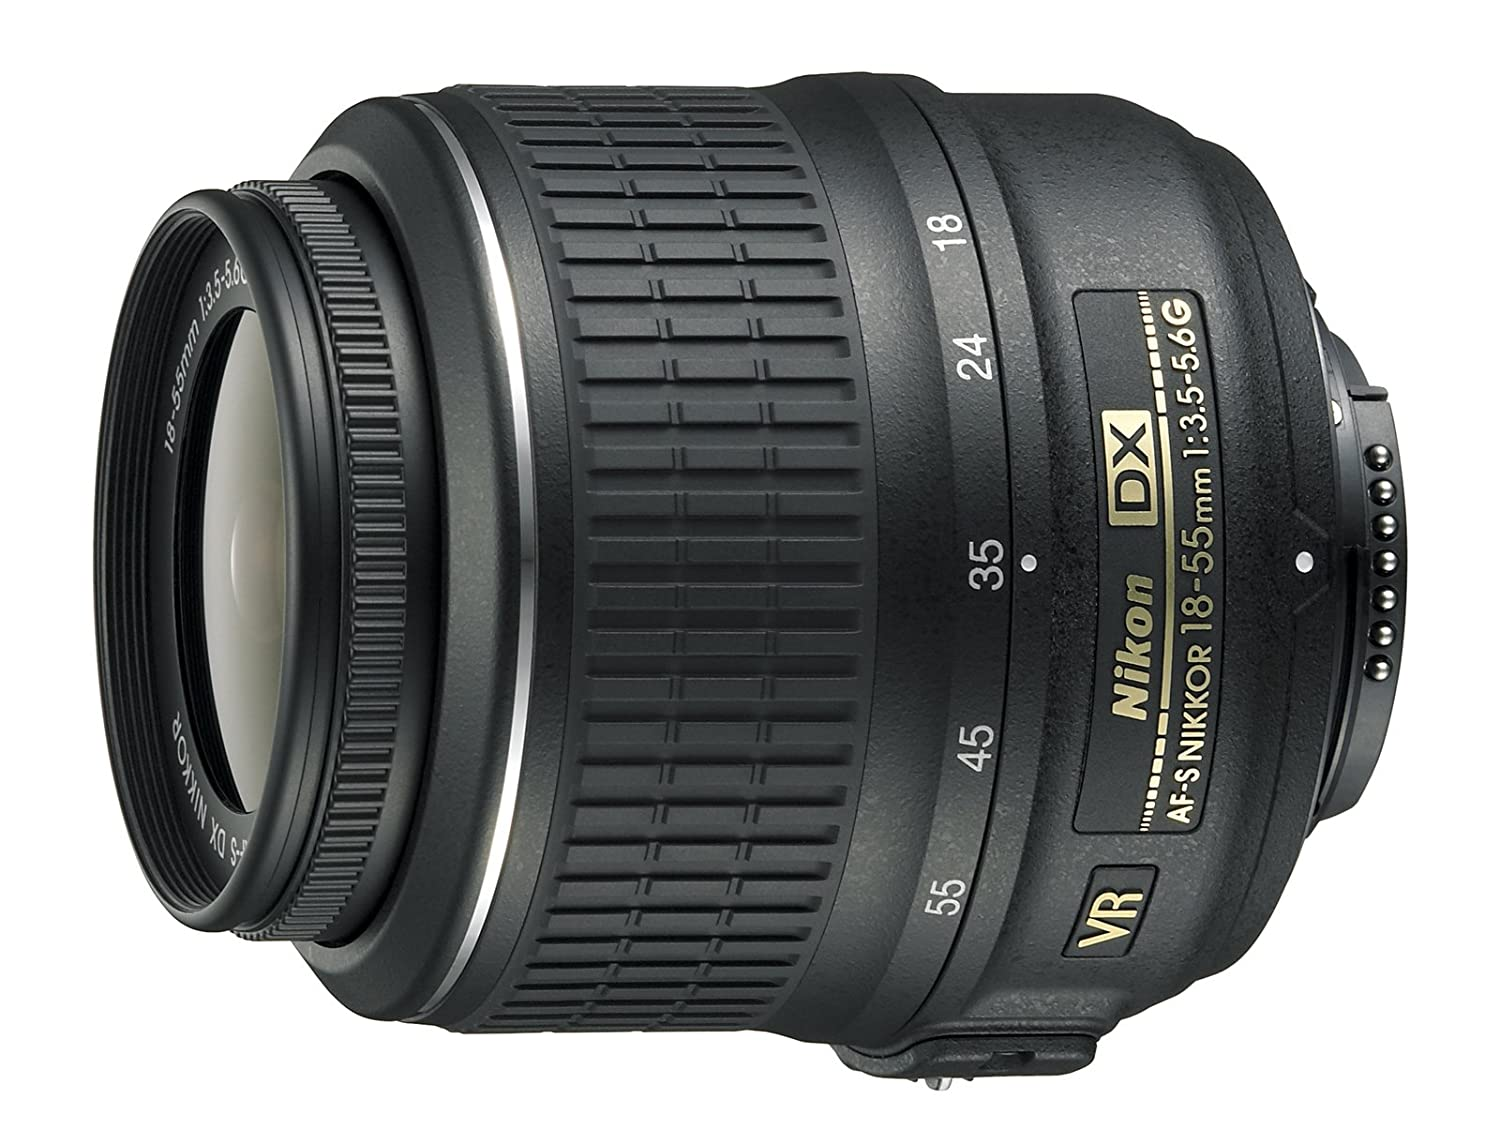 Nikon AF-S DX NIKKOR 18-55mm f/3.5-5.6G Vibration Reduction Zoom Lens with Auto Focus for Nikon DSLR Cameras